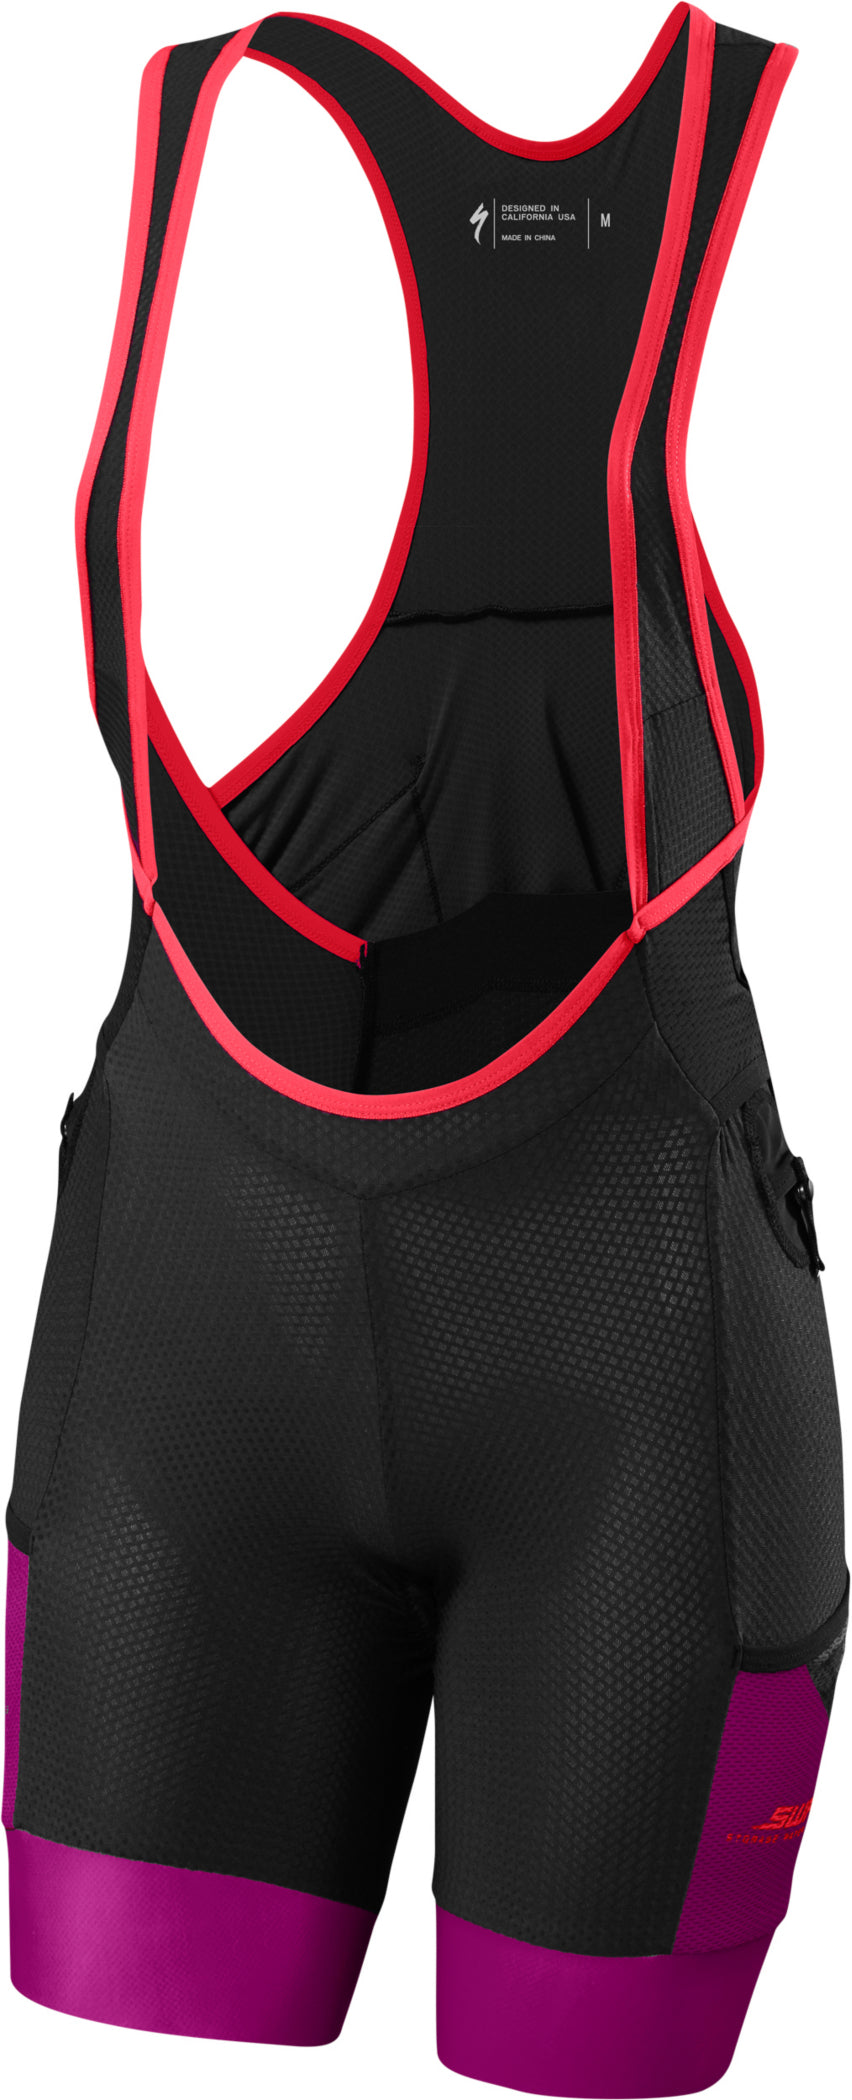 Women's SWAT™ Liner Bib Shorts